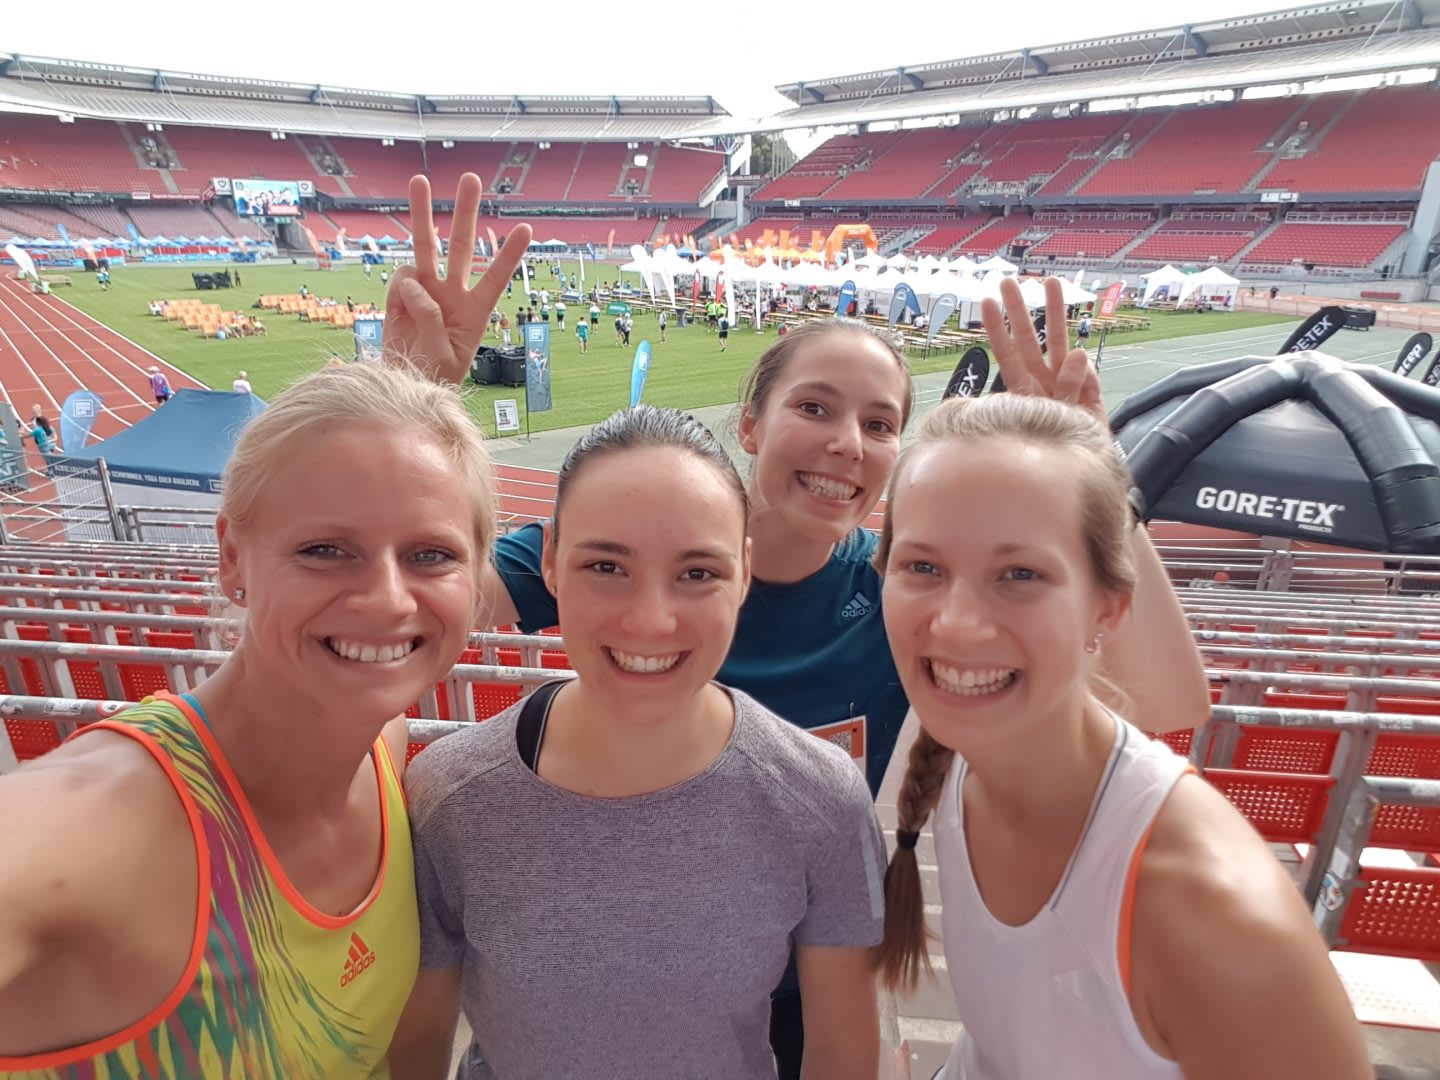 A group of women at a running competition in a stadium. Group running, coaching, performance, company run, track, GamePlan A